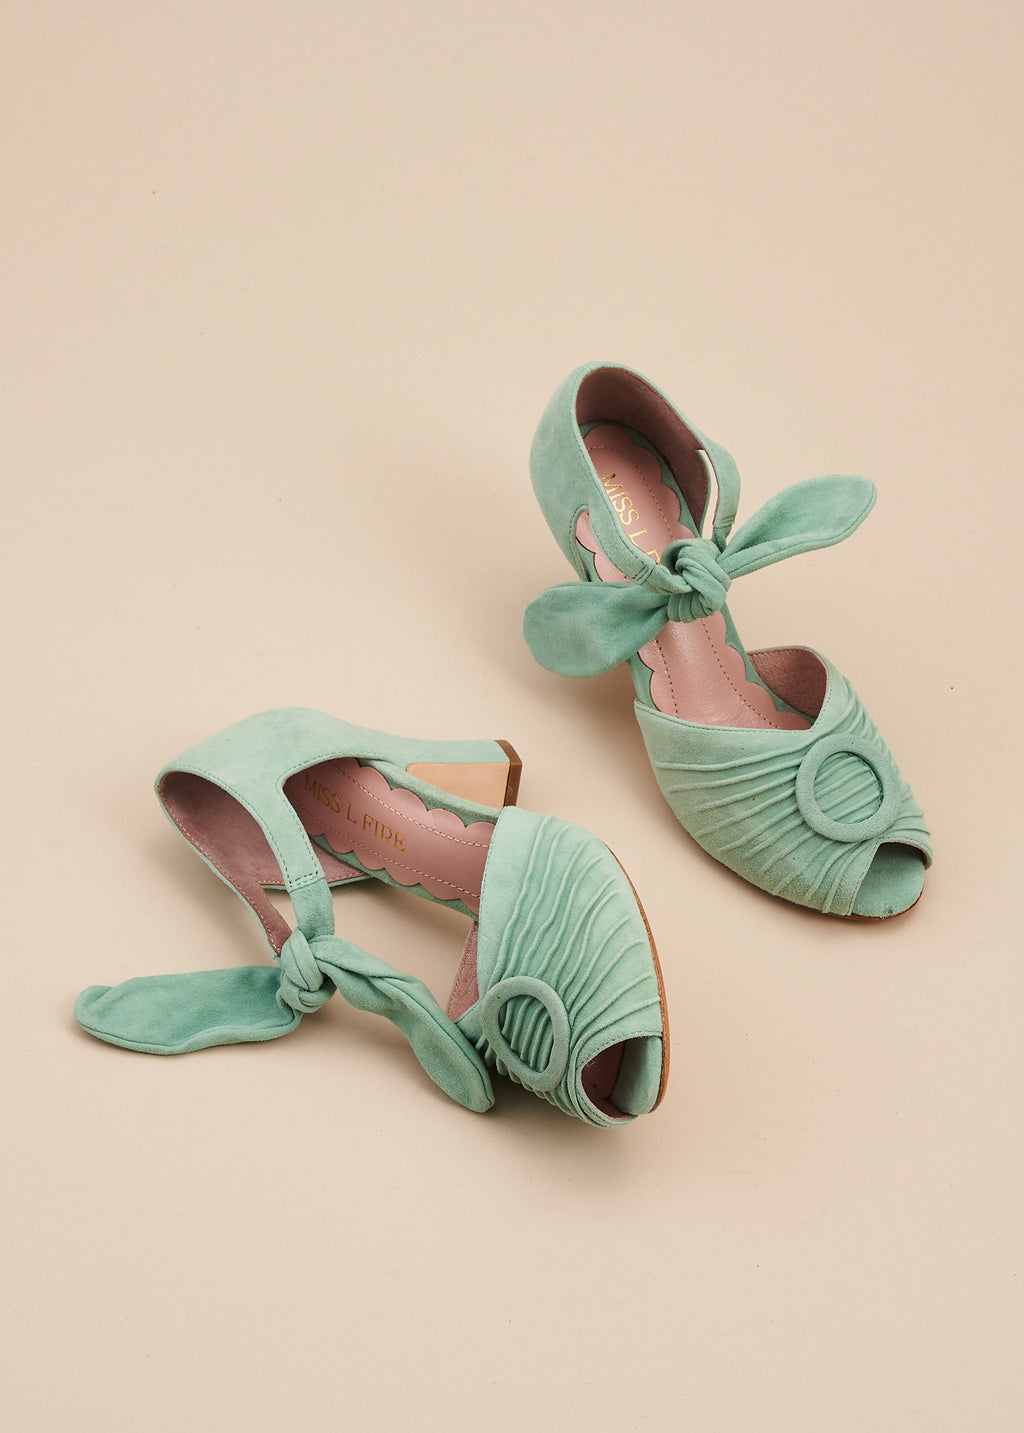 Loretta in soft mint green suede by Miss L Fire is a vintage inspired peep toe sandal with 8cm heel and soft ankle tie straps. Vamp features delicate pleating and covered buckle detail.